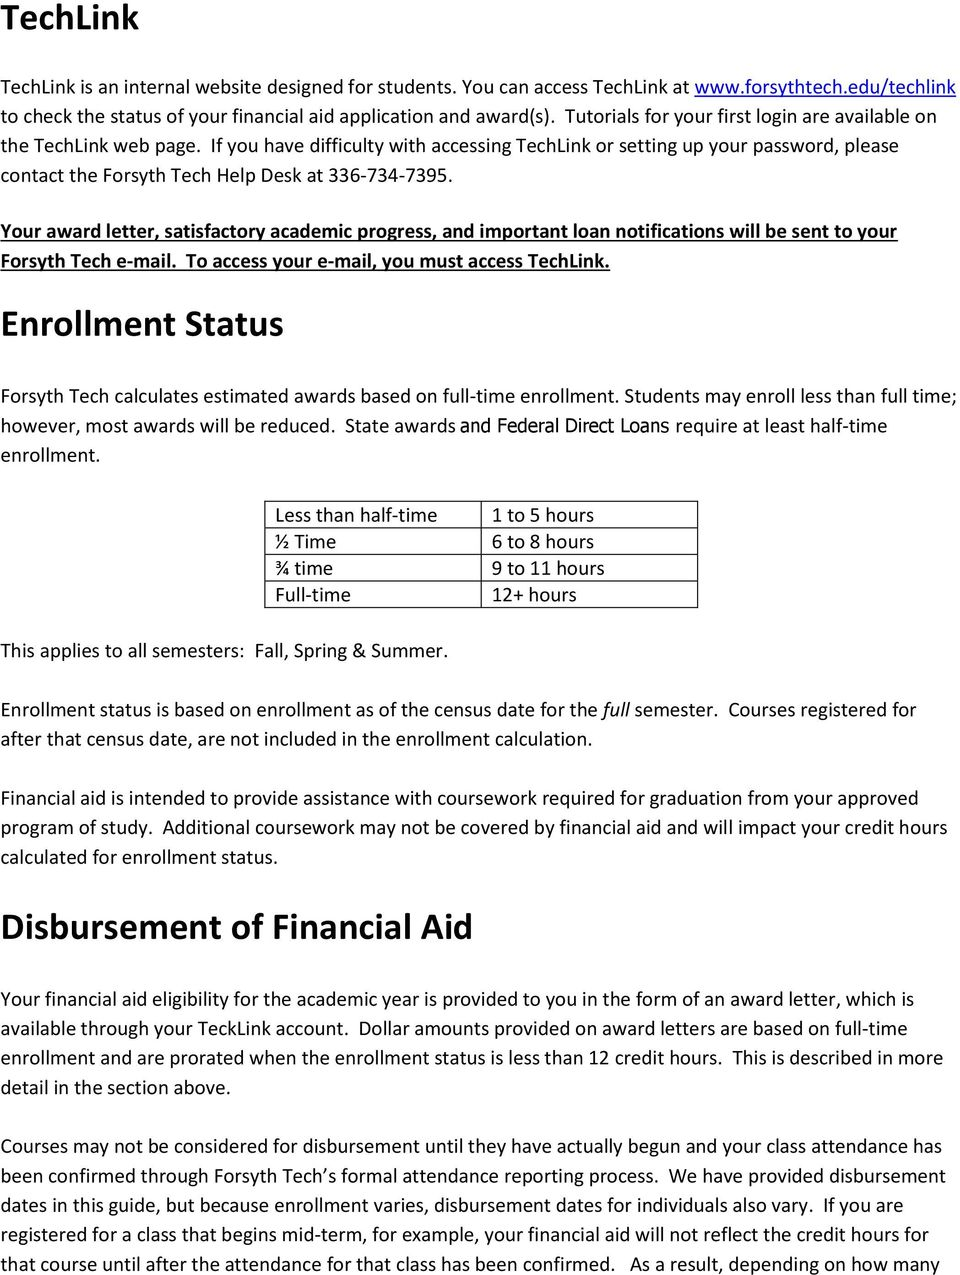 Guide To Financial Aid At Forsyth Tech Pdf Free Download